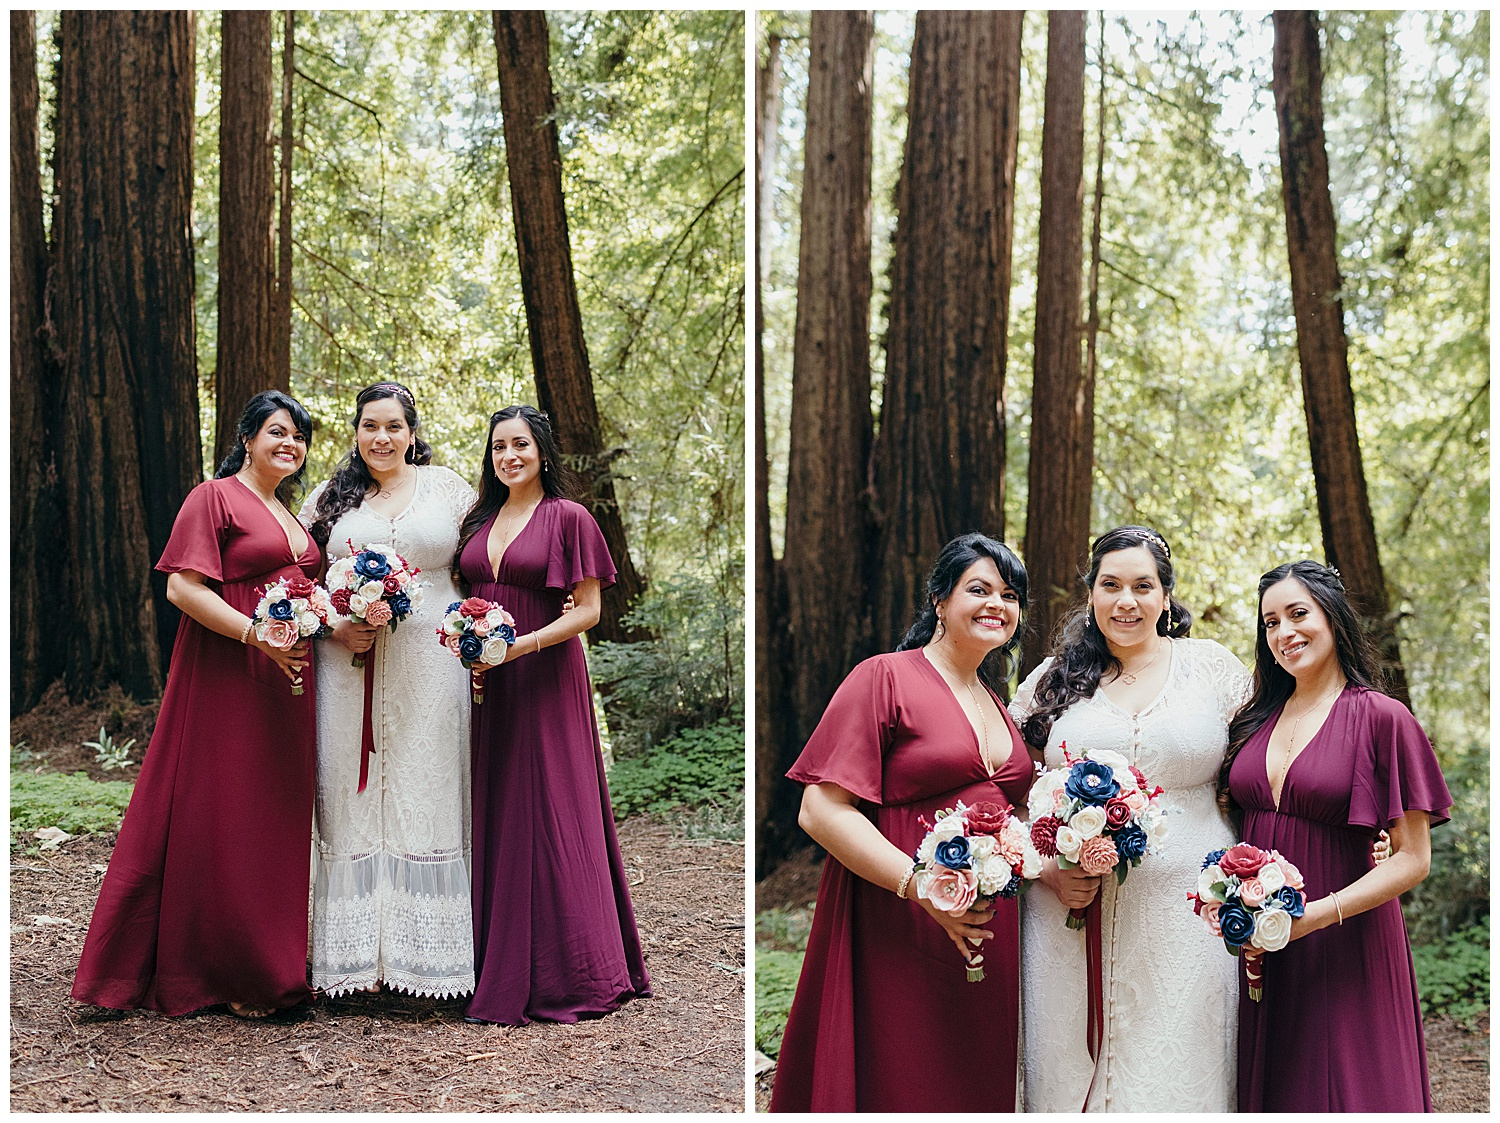 Bride and bridesmaids portraits after Henry Cowell redwoods wedding